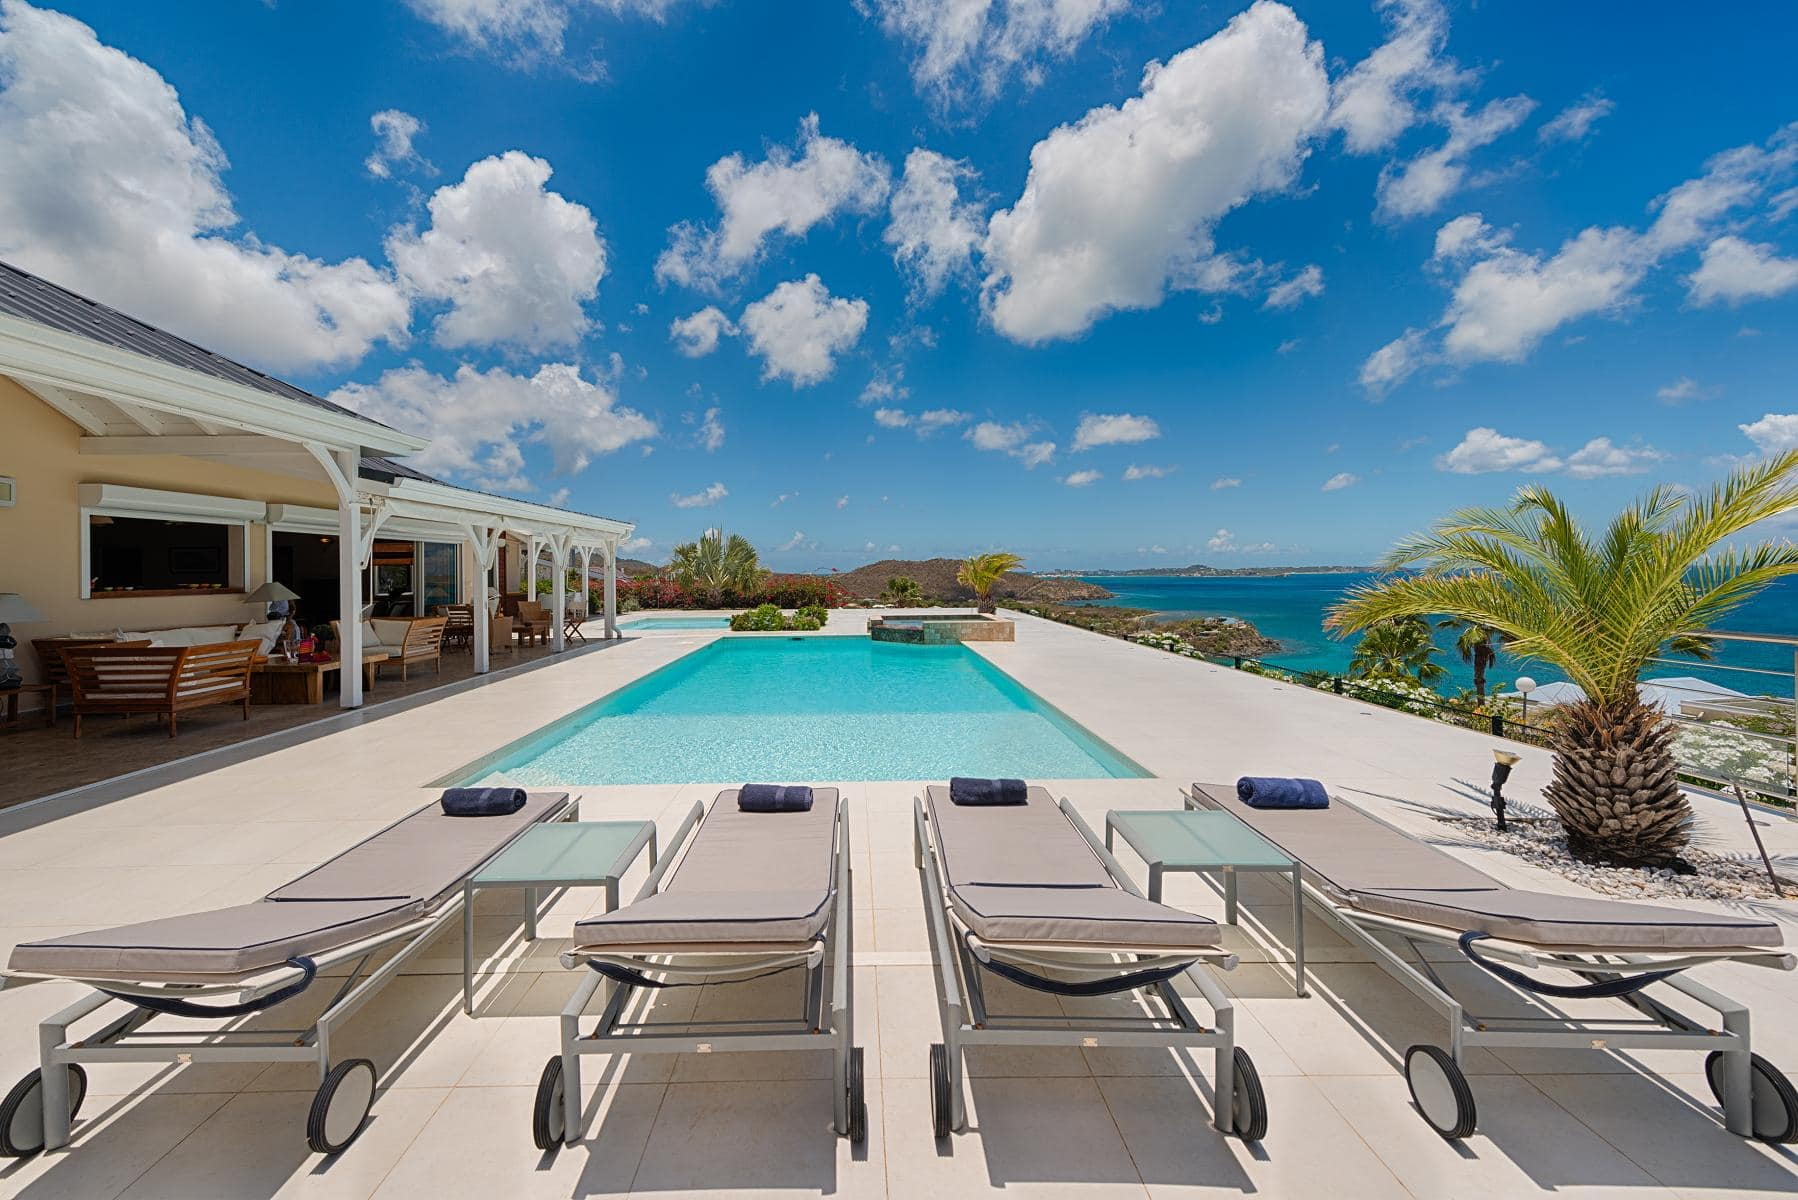 Deal Of The Week: 7th Night Free Luxury Villas in St. Martin